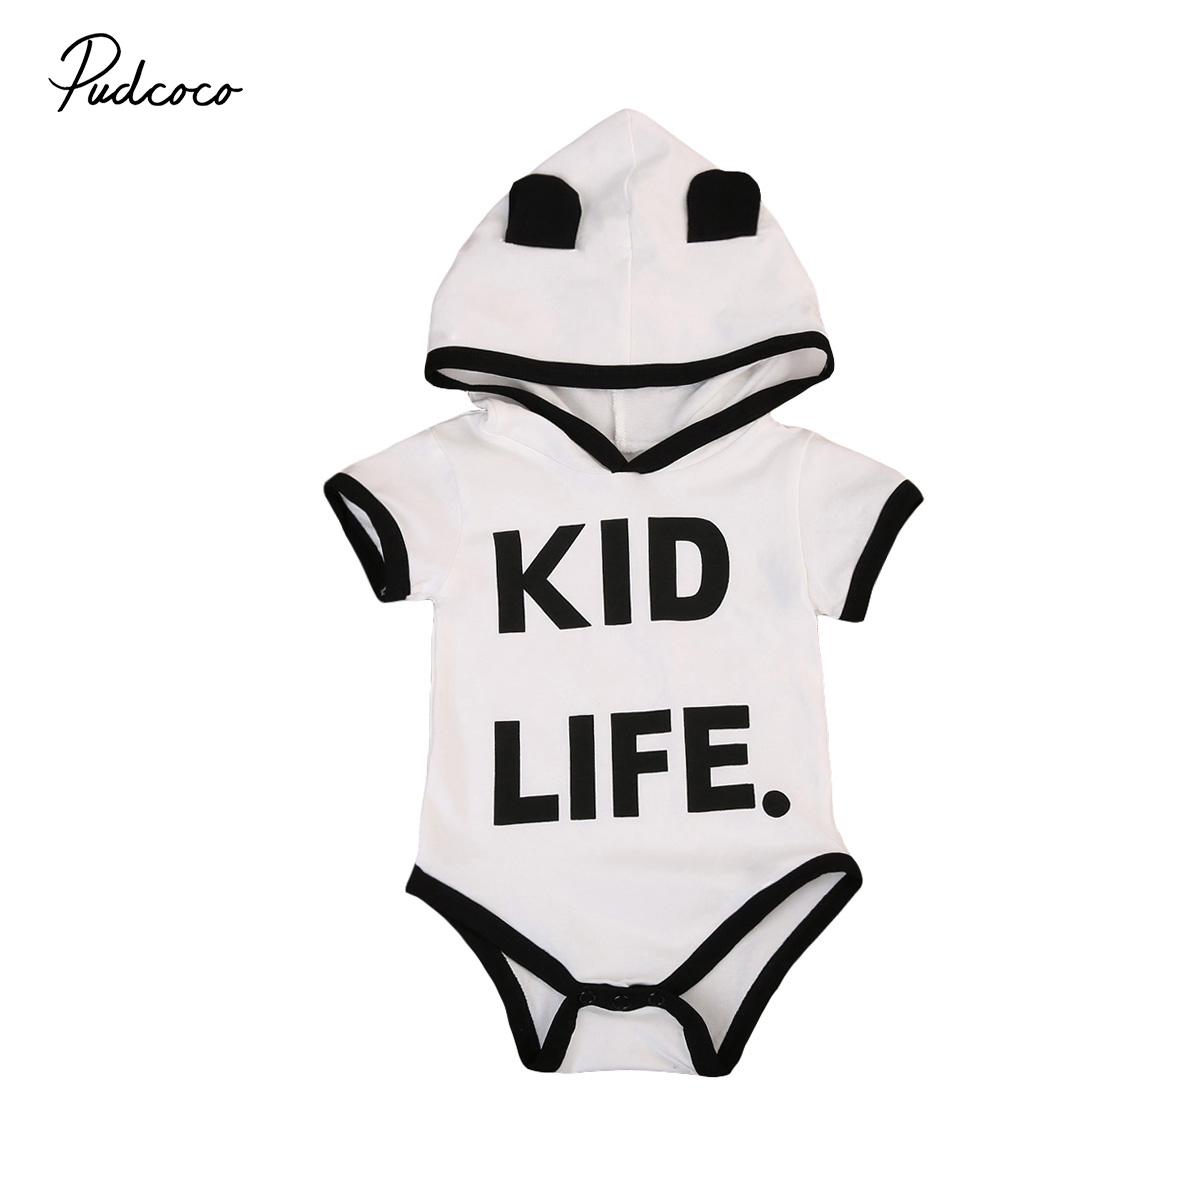 Newborn Kid Life Baby Boy Girl Clothes Hoodies baby girl baby girl clothes romper baby clothes Romper Bodysuit Outfit